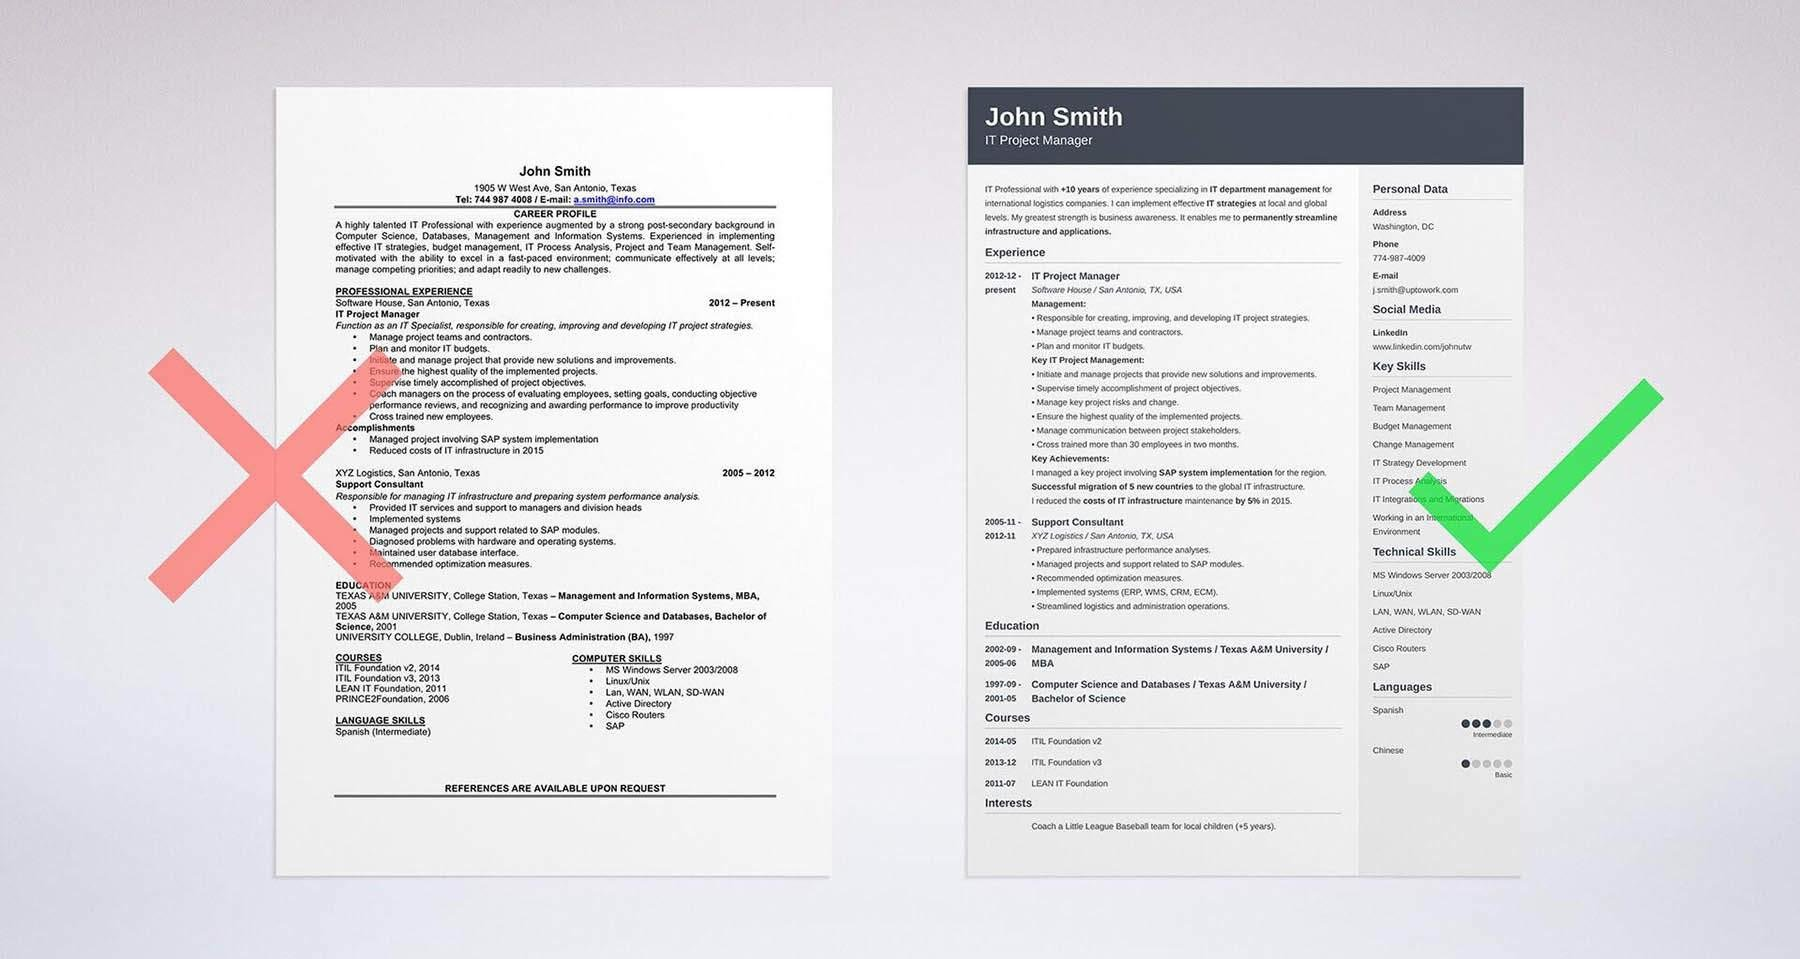 20 resume objective examples use them on your resume tips if you want to save time get professional tips and quickly write your resume you can try our resume builder its fast and easy to use madrichimfo Image collections